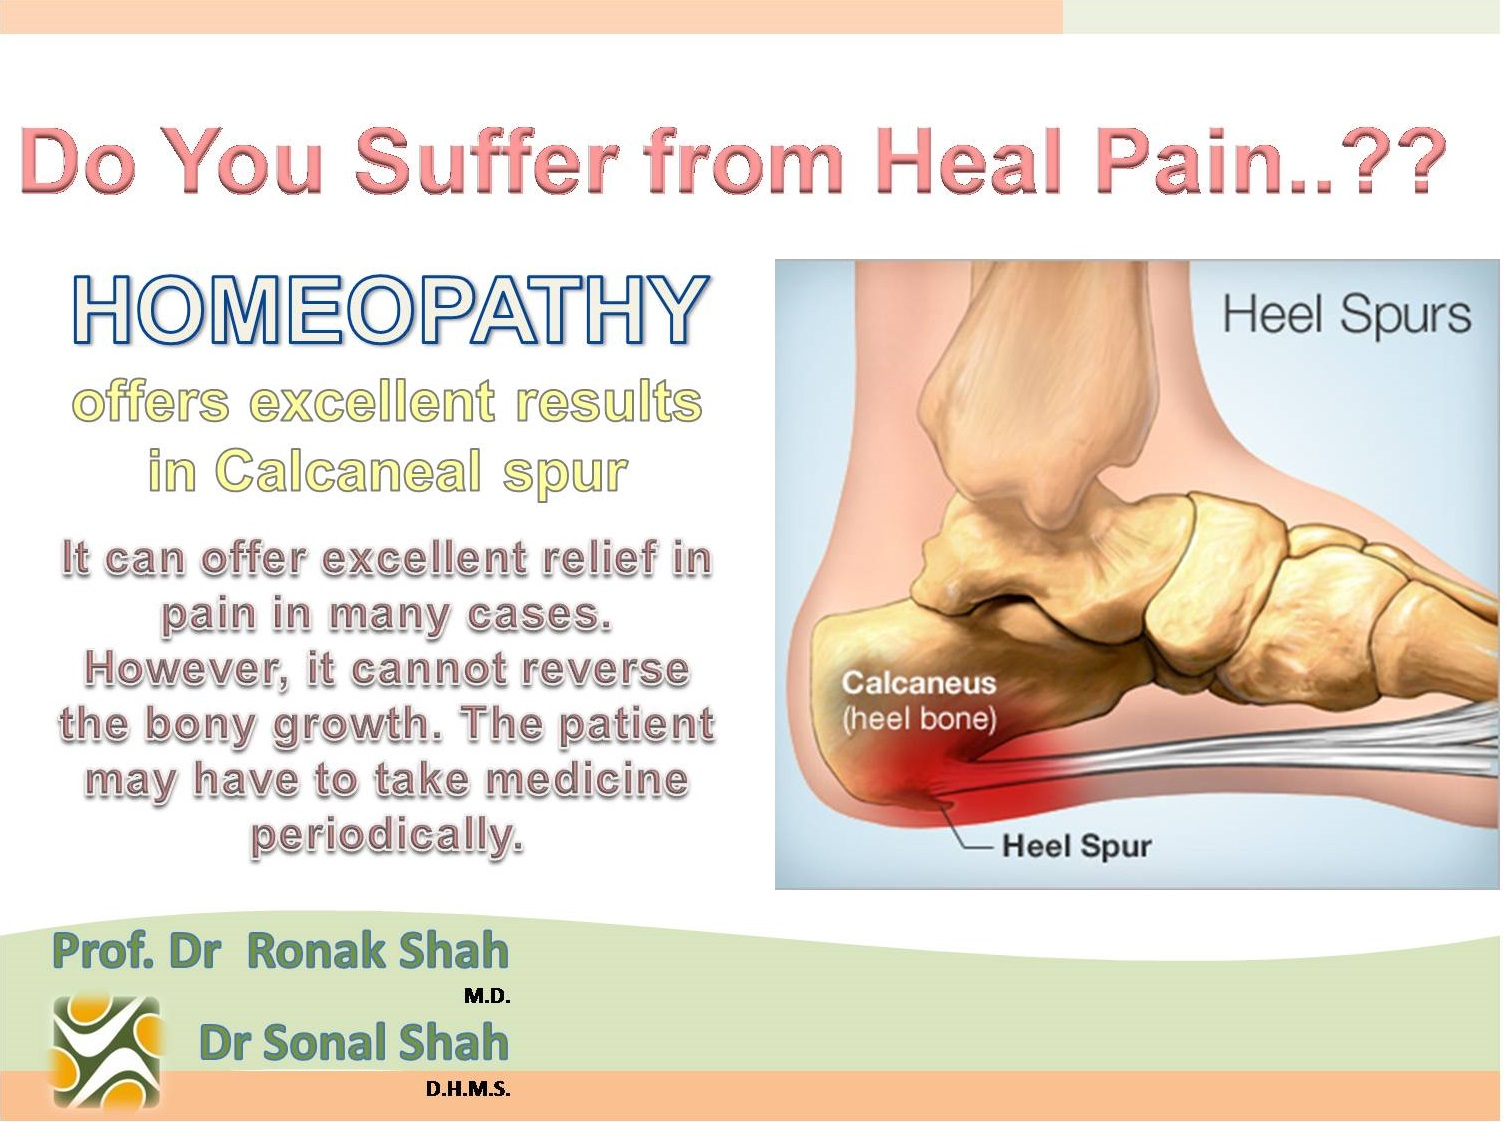 Treatment of folk remedies by the spur on the heel